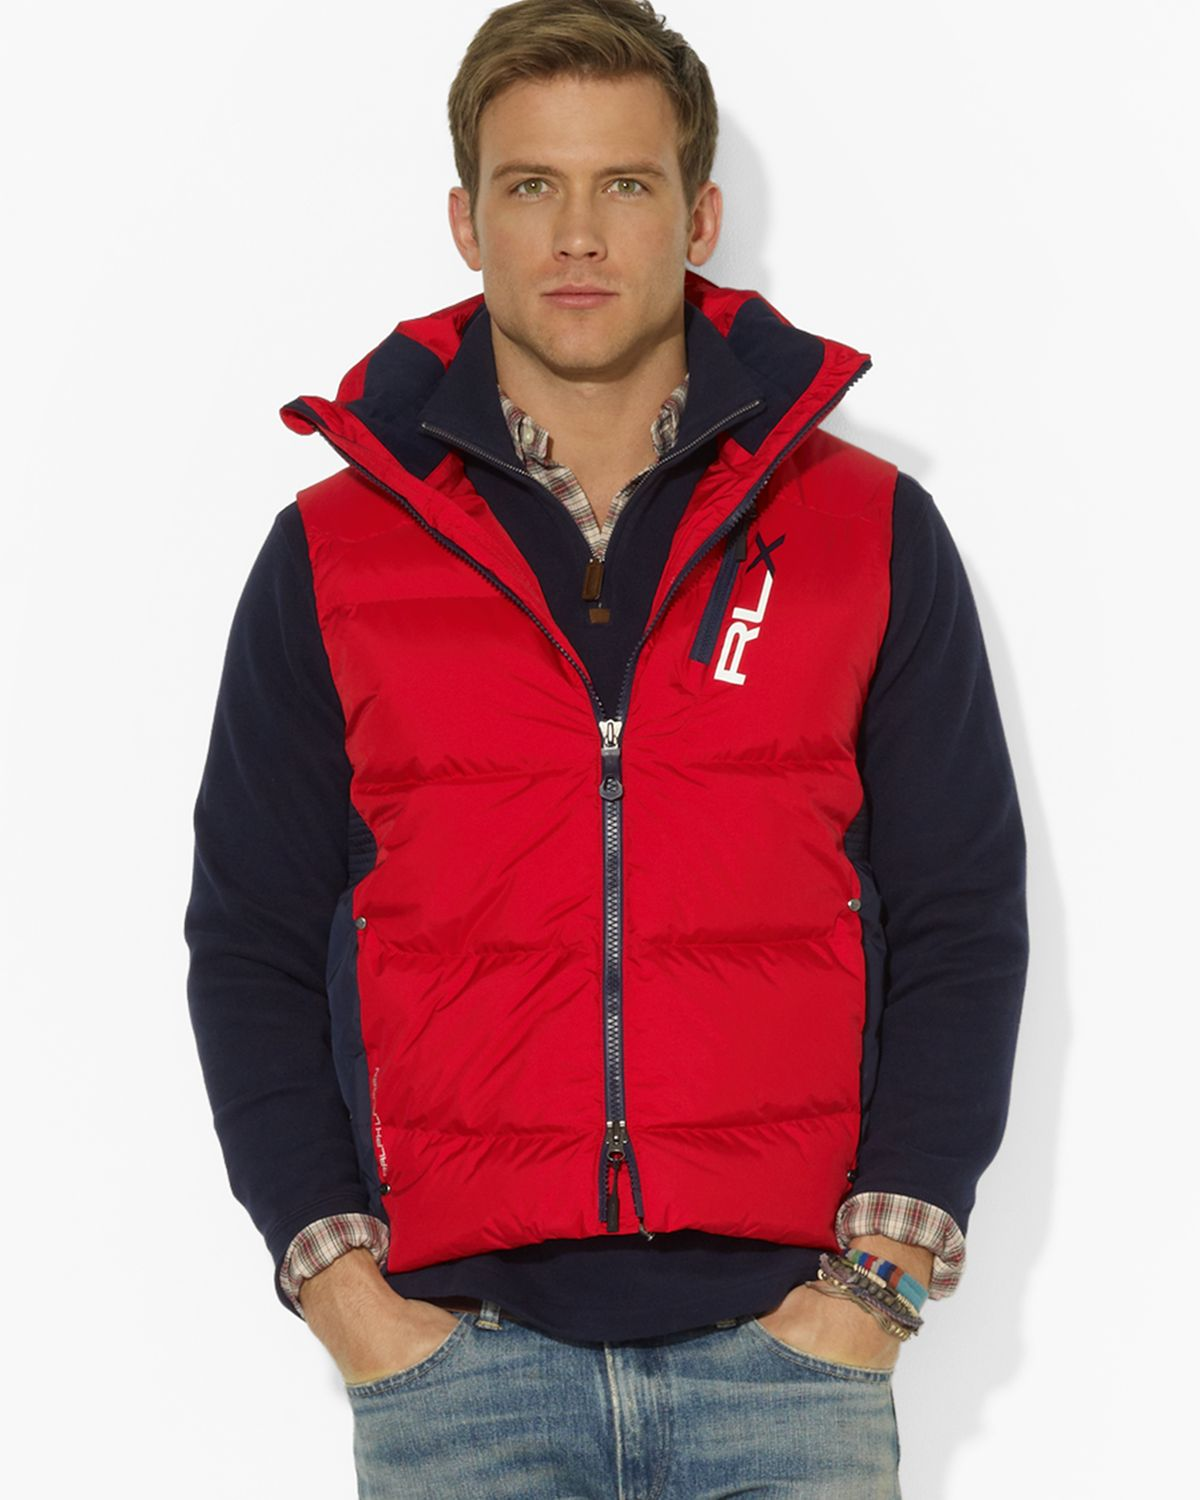 Ralph Lauren Fashion Show At New York: Ralph Lauren Polo Rlx Core Down Vest In Red For Men